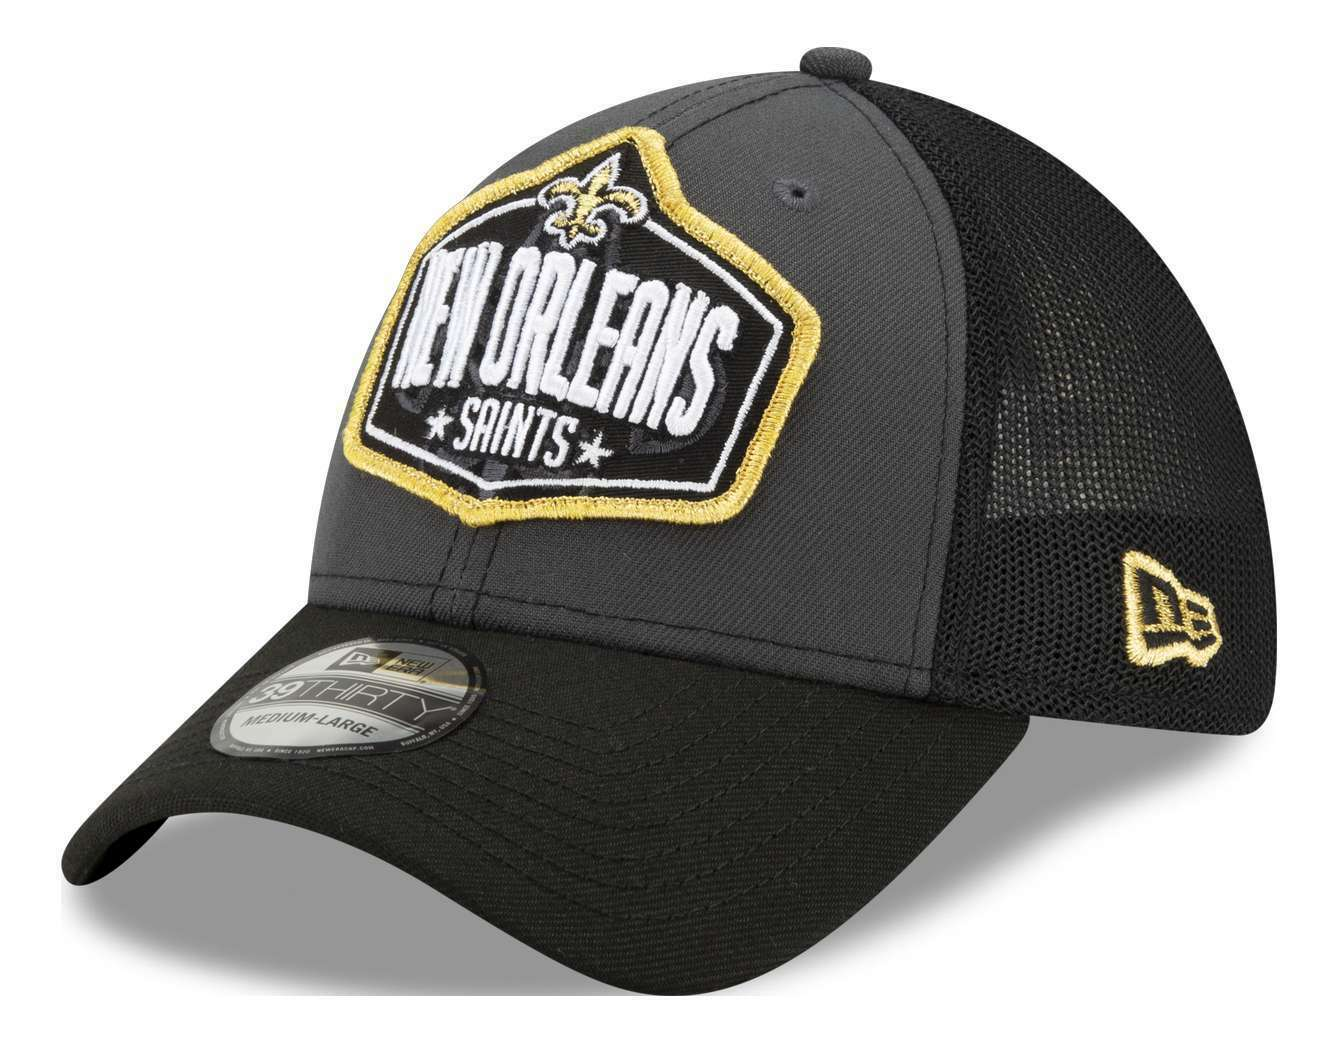 New Era - NFL New Orleans Saints 2021 Draft 39Thirty Trucker Stretch Cap - Mehrf